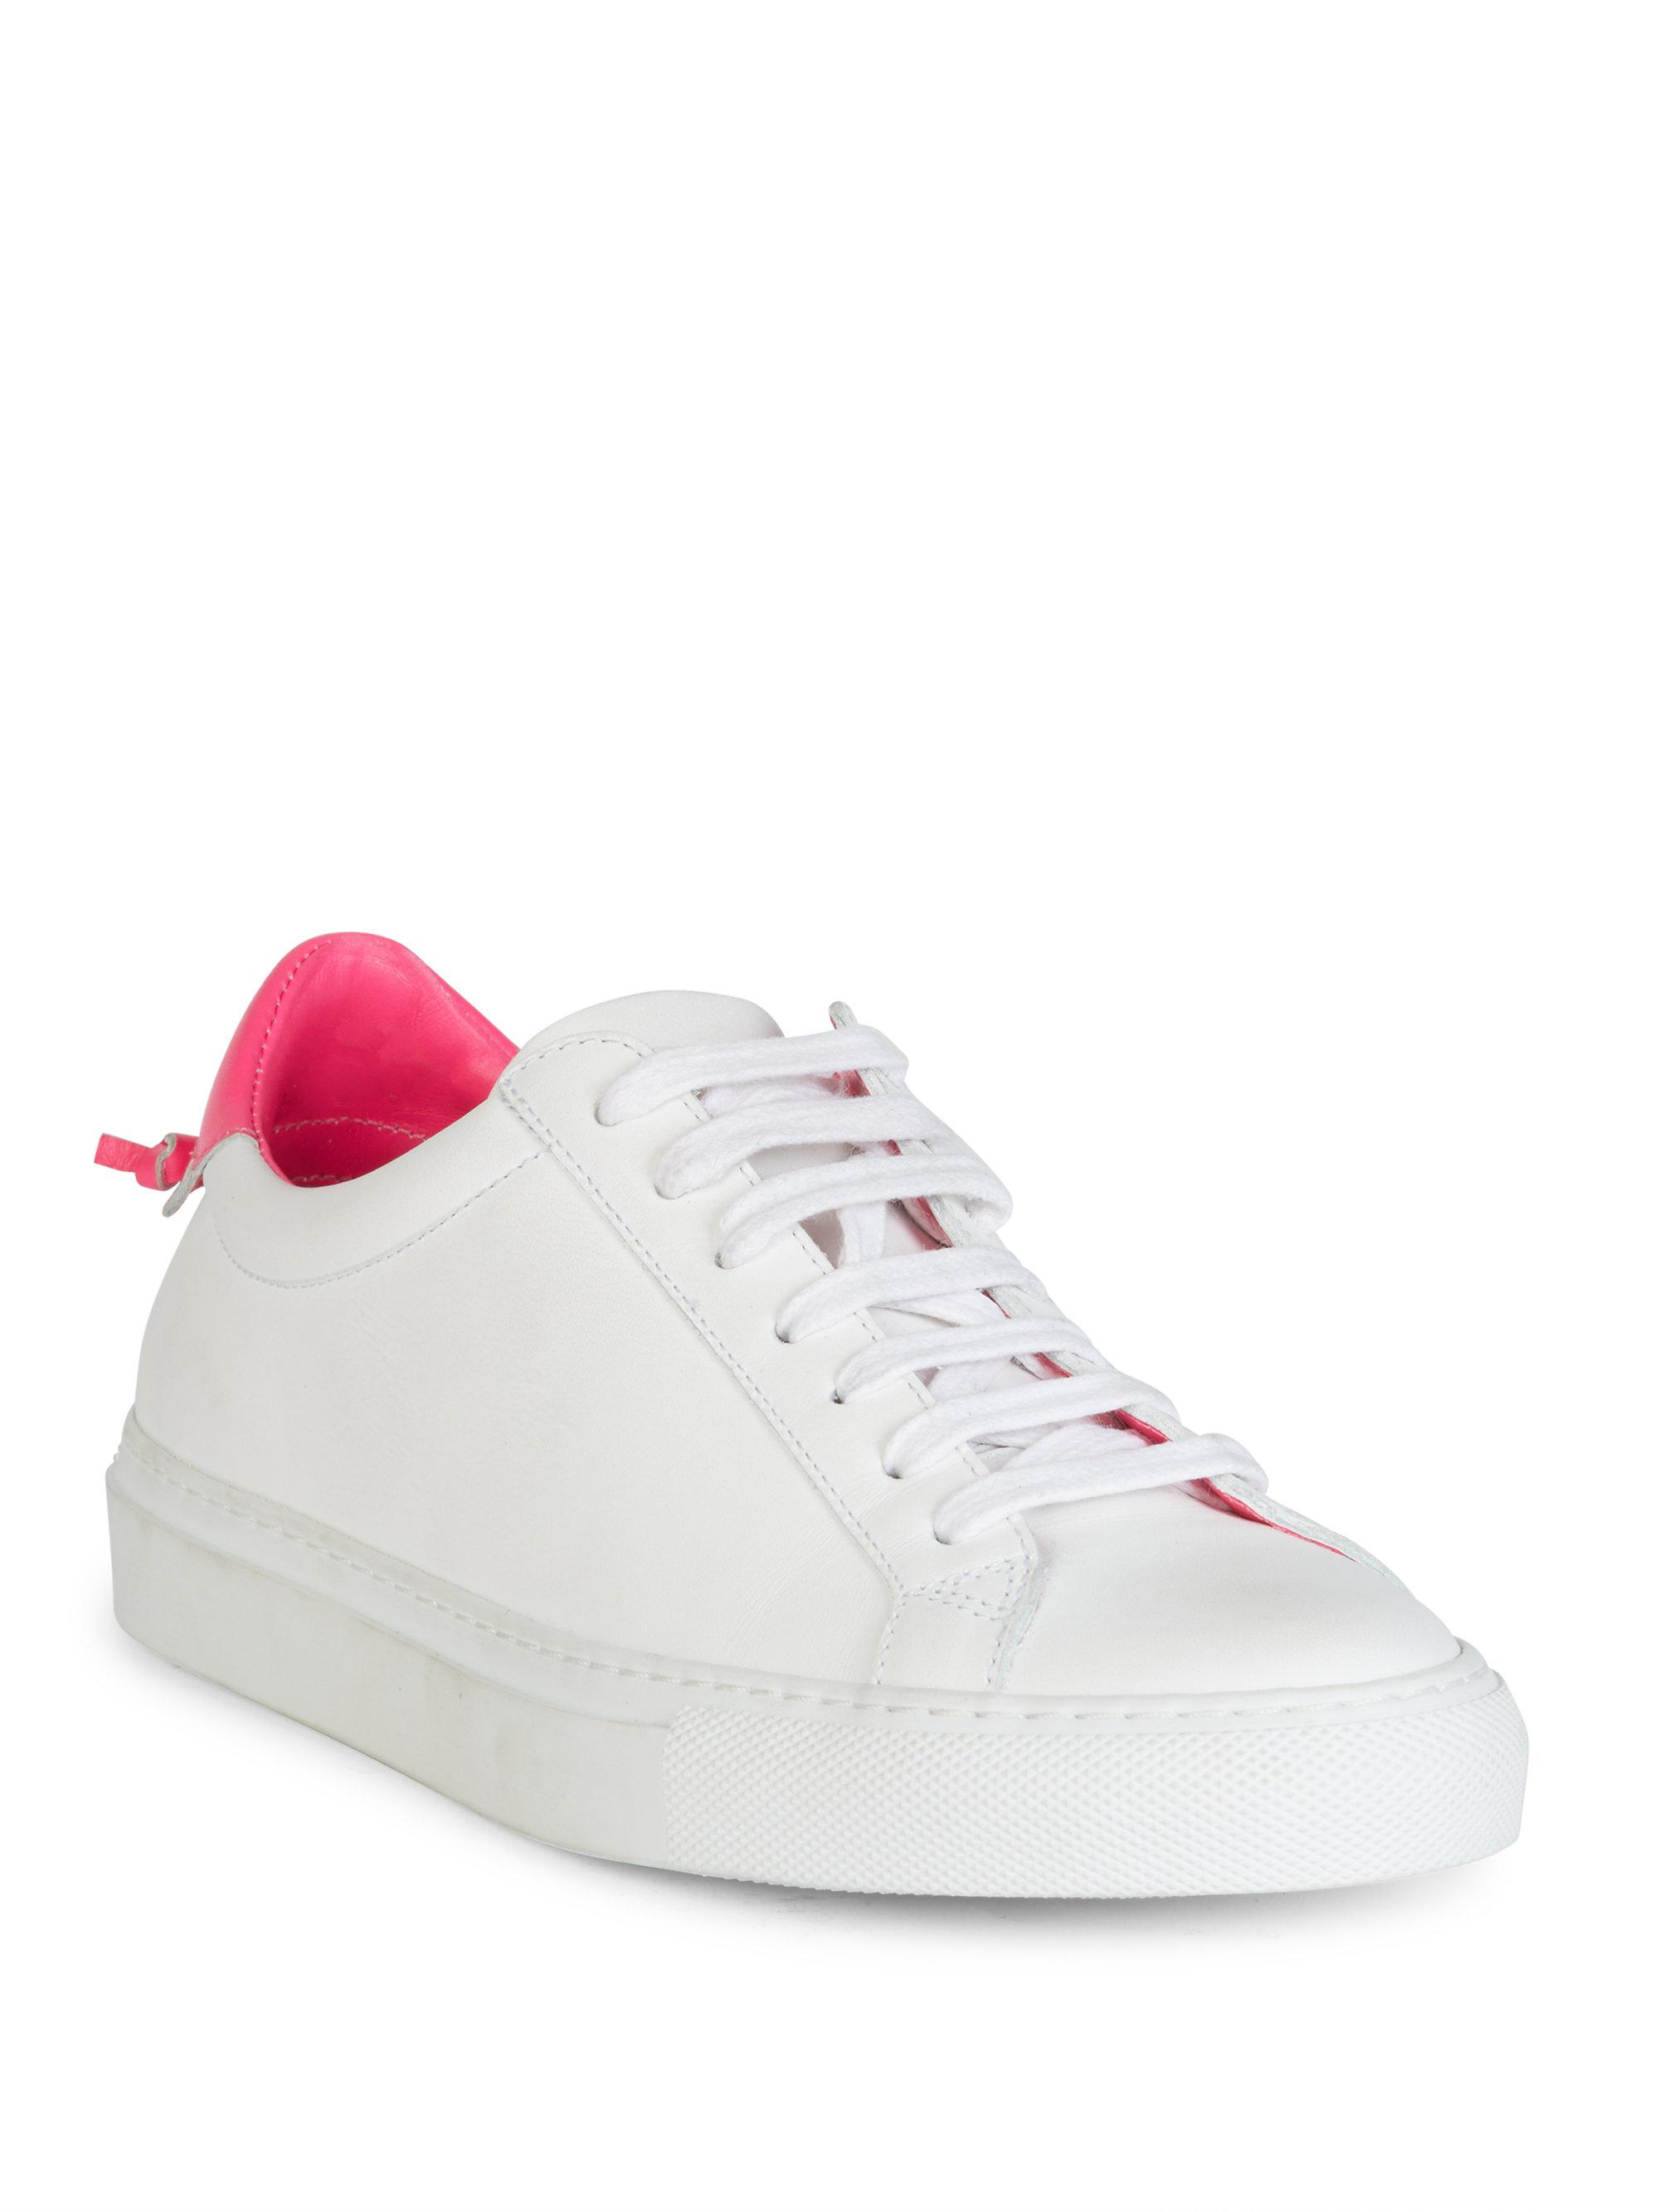 Sneakers smooth leather Logo pink white Givenchy tqjuuXi1